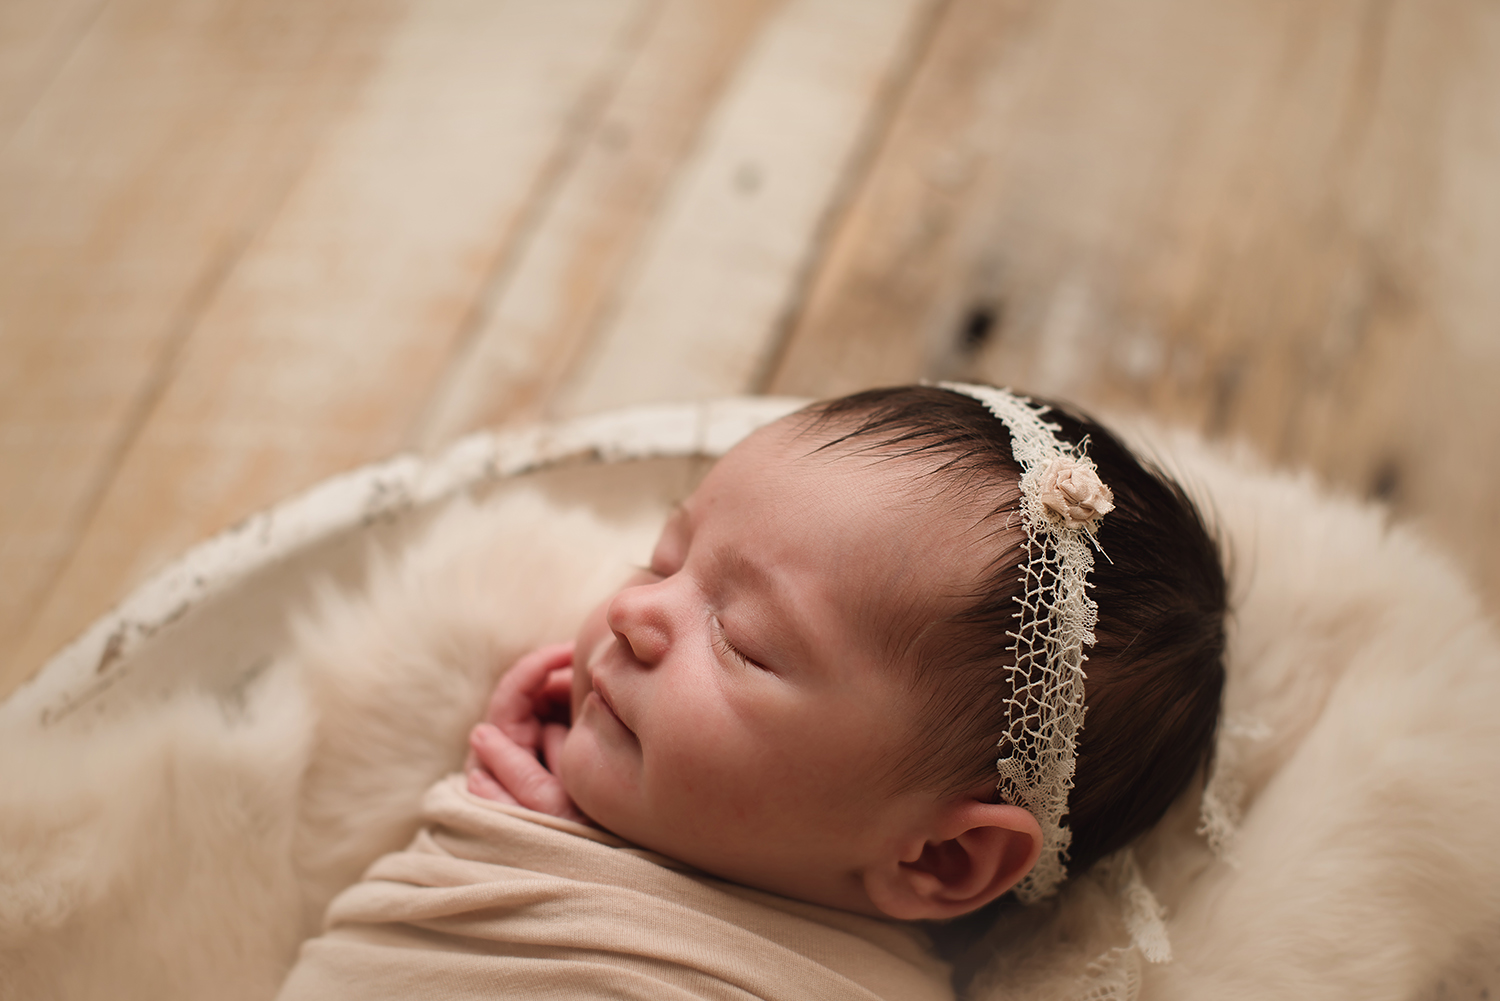 baby-photographer-columbus-ohio-barebabyphotography.jpg